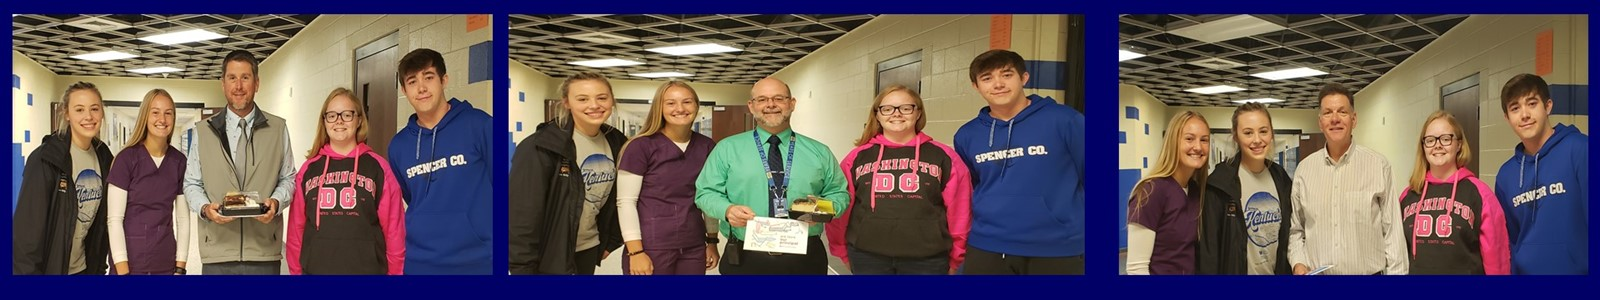 NHS OFFICERS SHOW APPRECIATION FOR SCHS PRINCIPALS